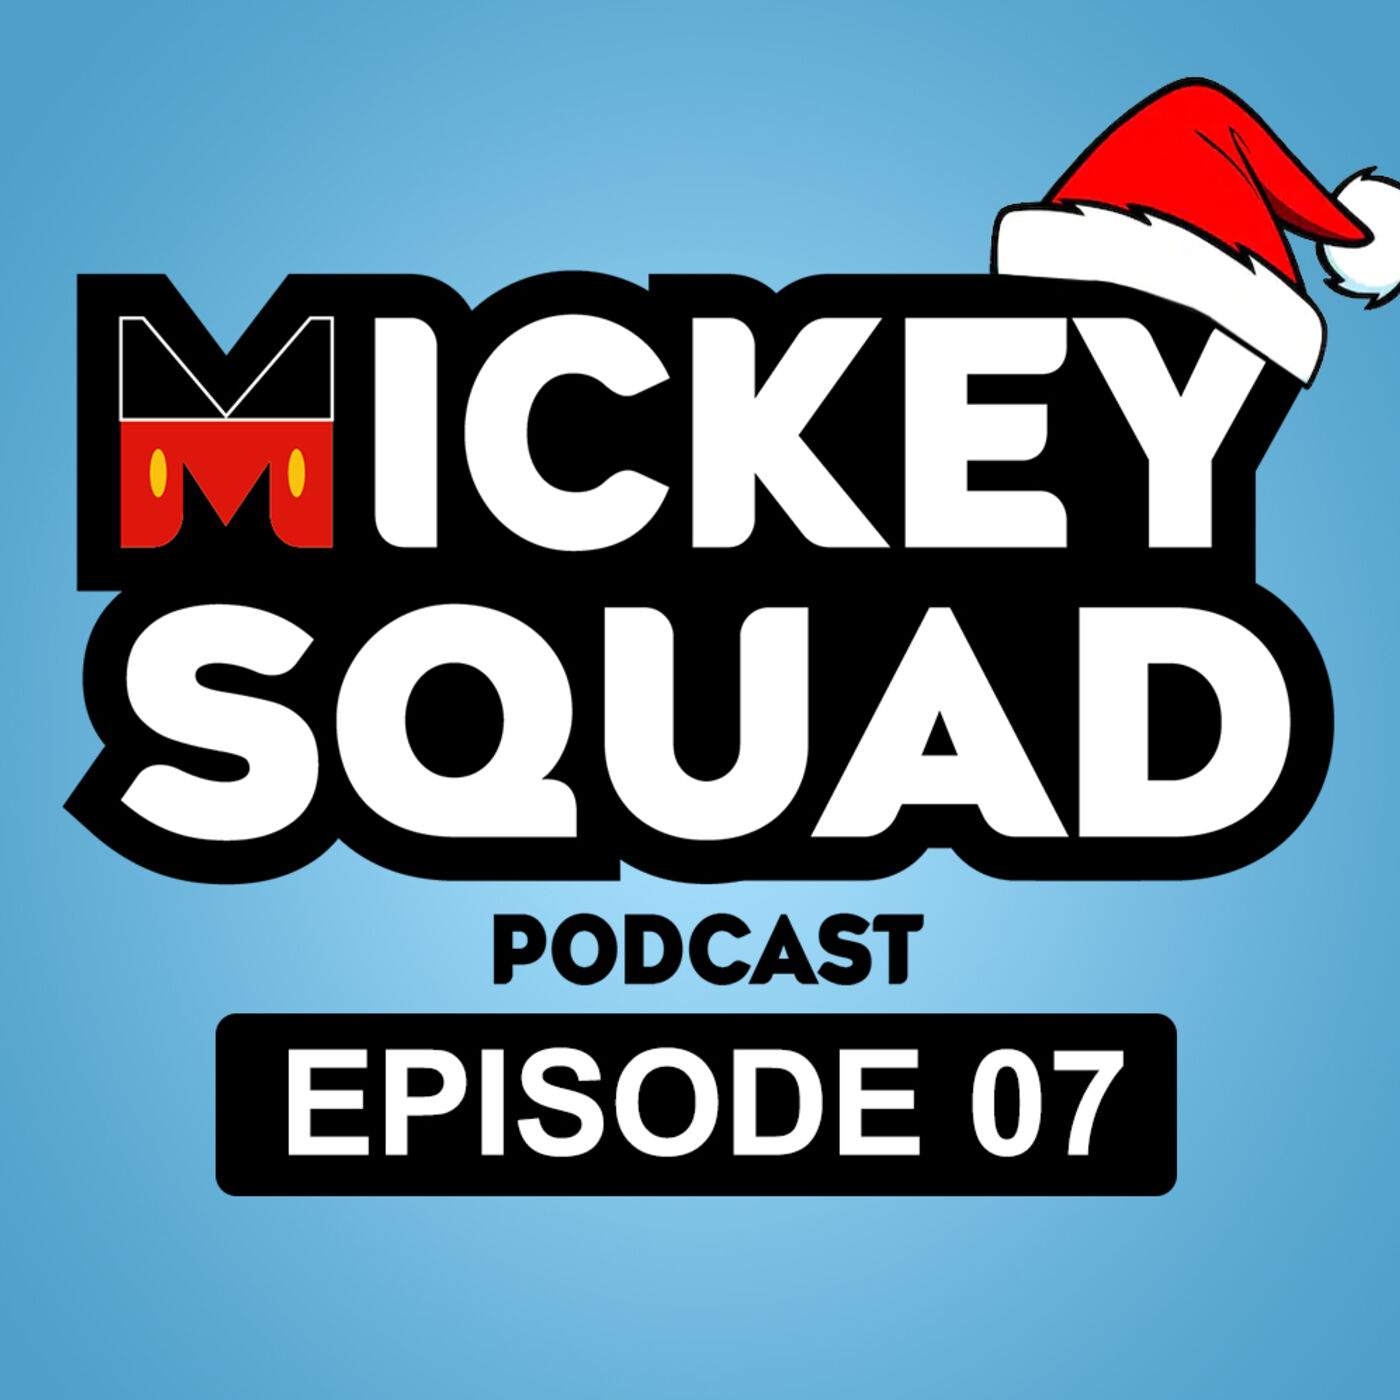 Episode 07 - We Wish Queue A Merry Christmas